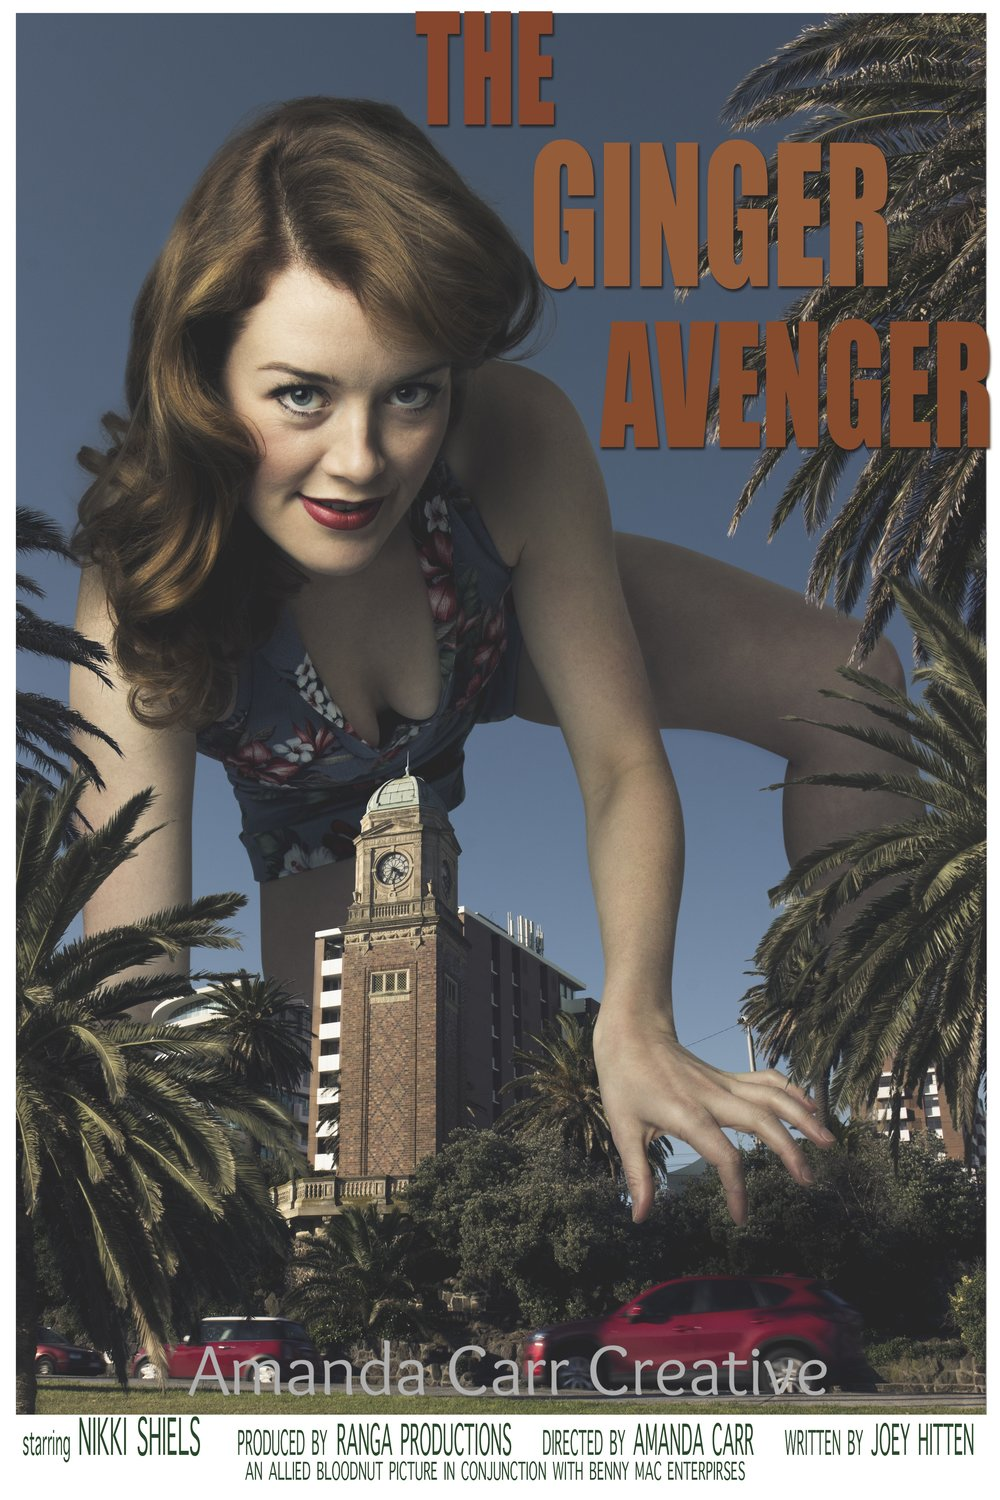 The Ginger Avenger